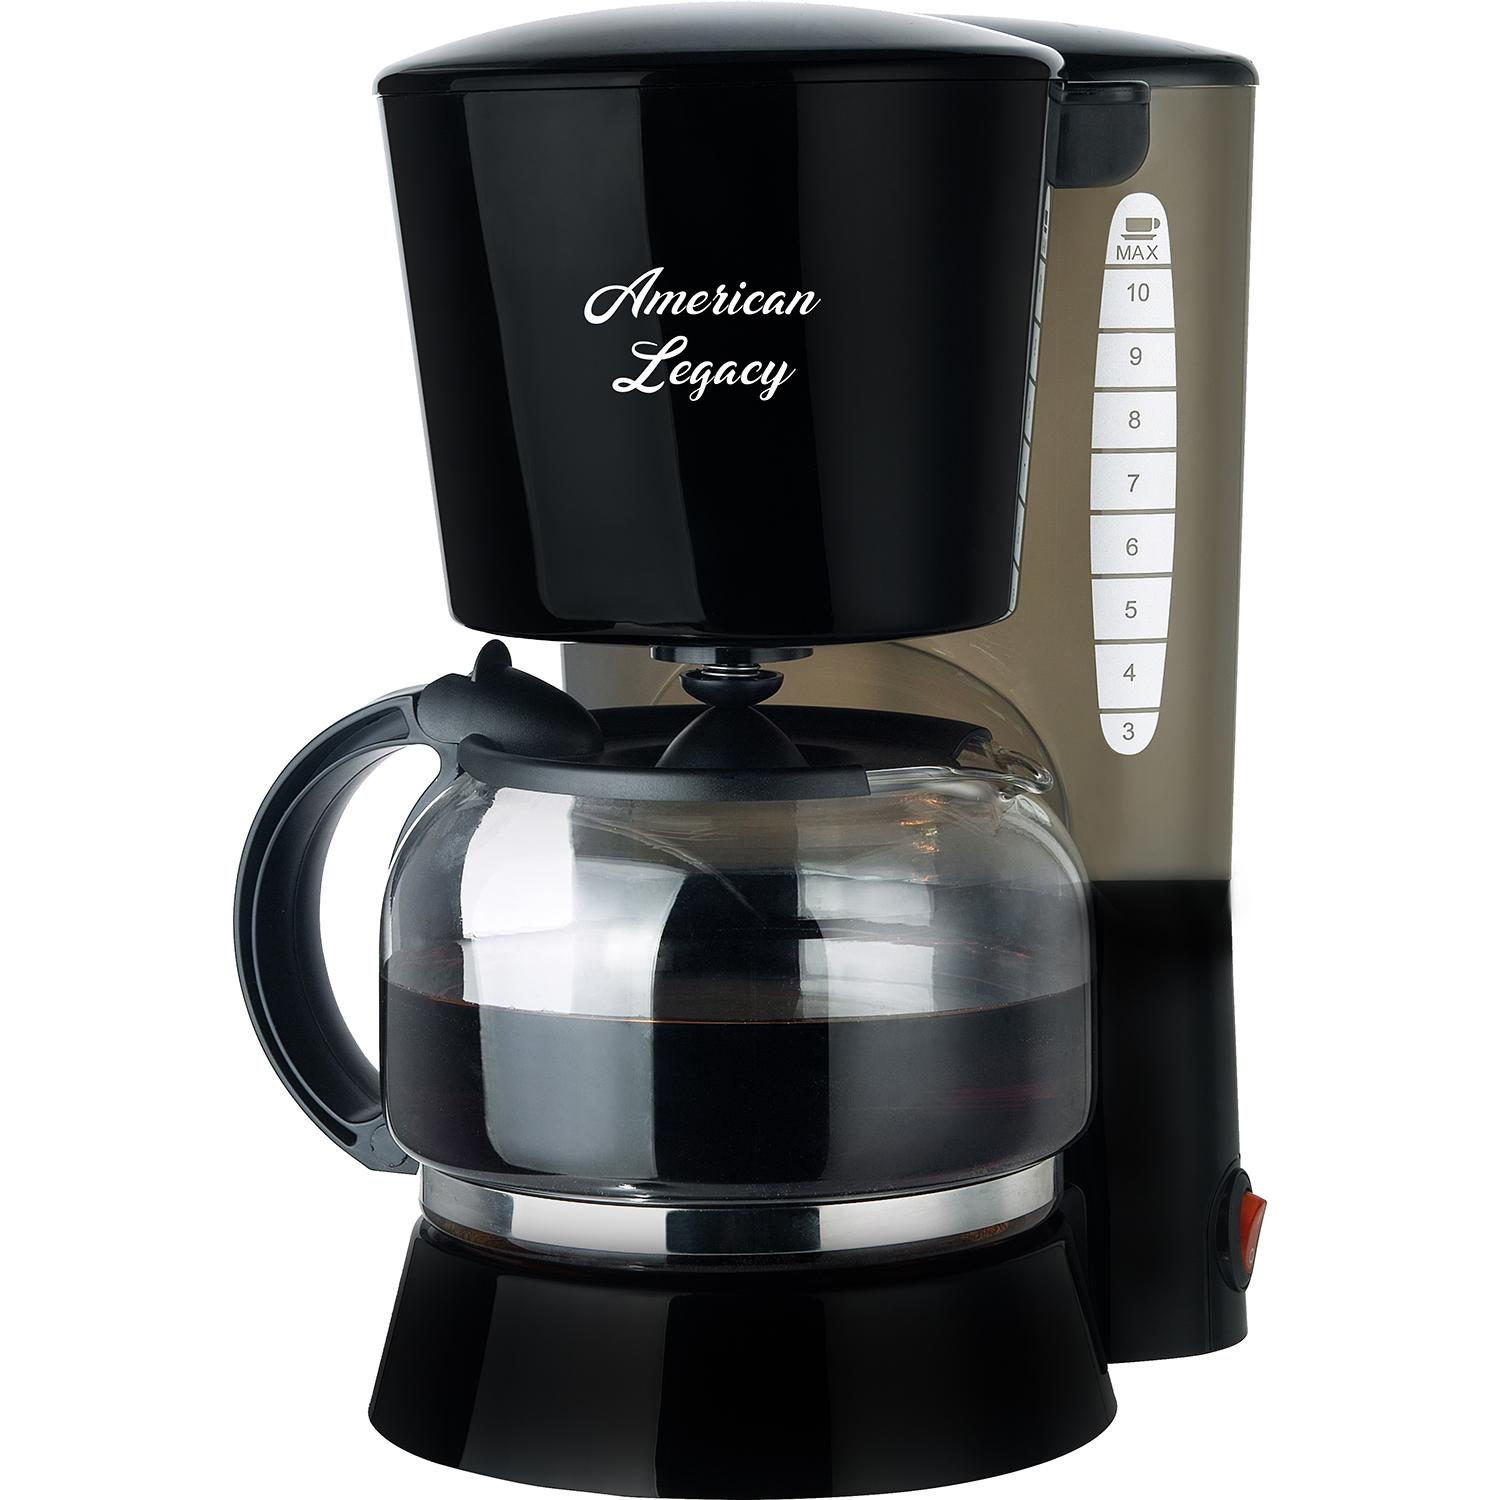 American Legacy 12 Cups Coffee Maker Alcm-6402 By American Legacy.